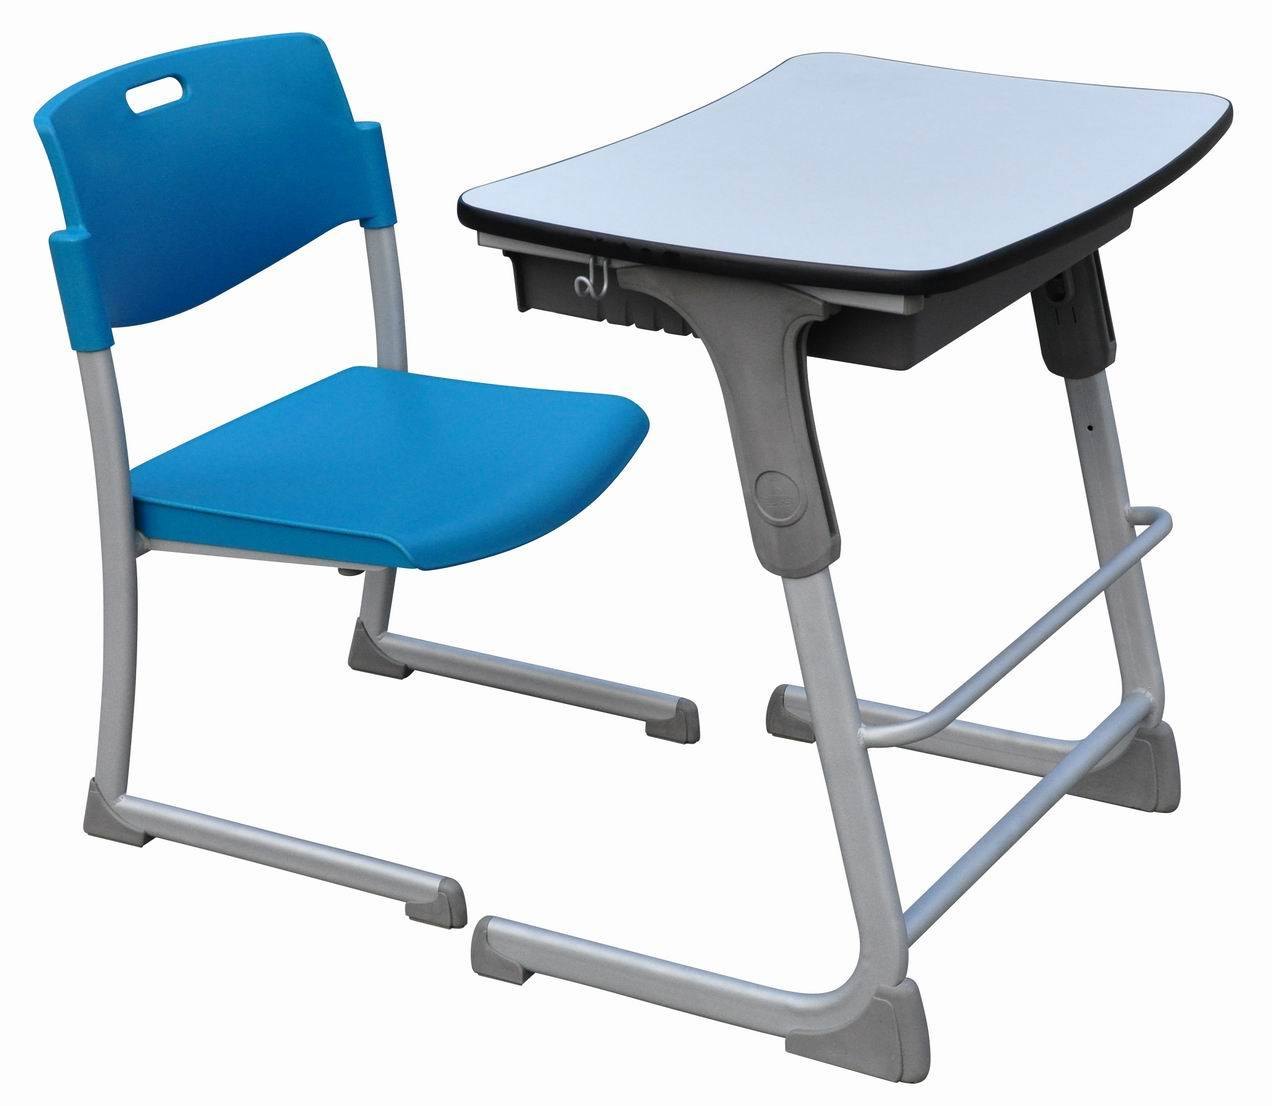 Bjs Office Chairs China School Chairs Bj 510 China School Chairs